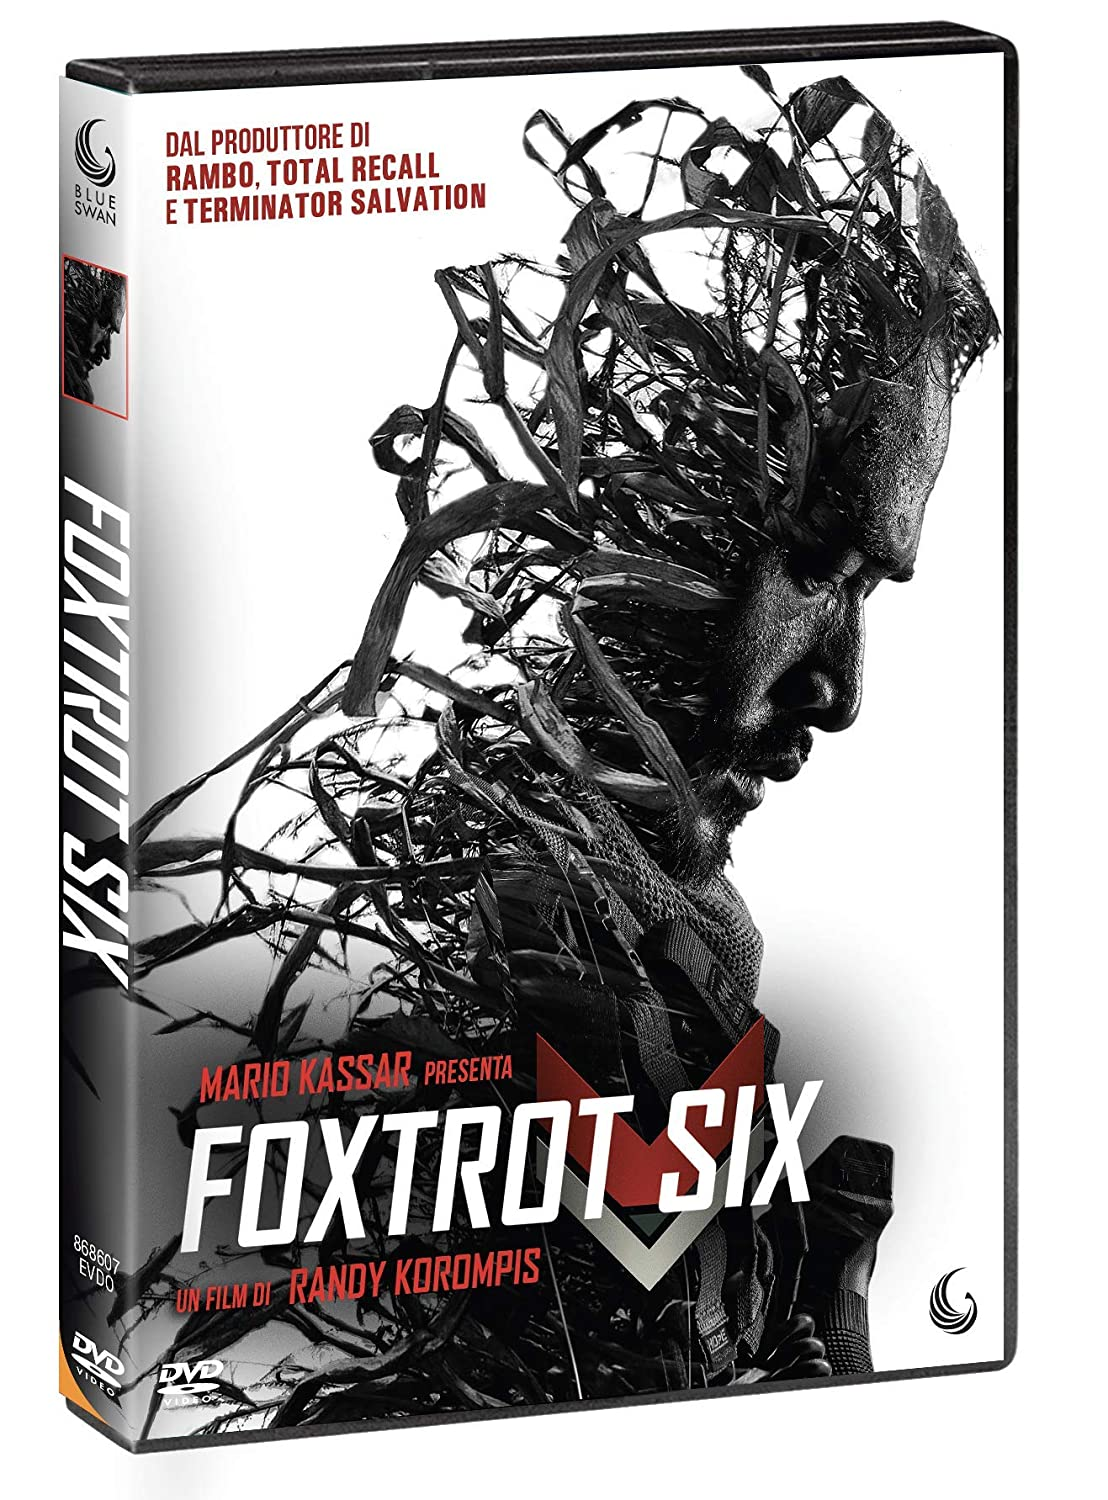 FOXTROT SIX (DVD)